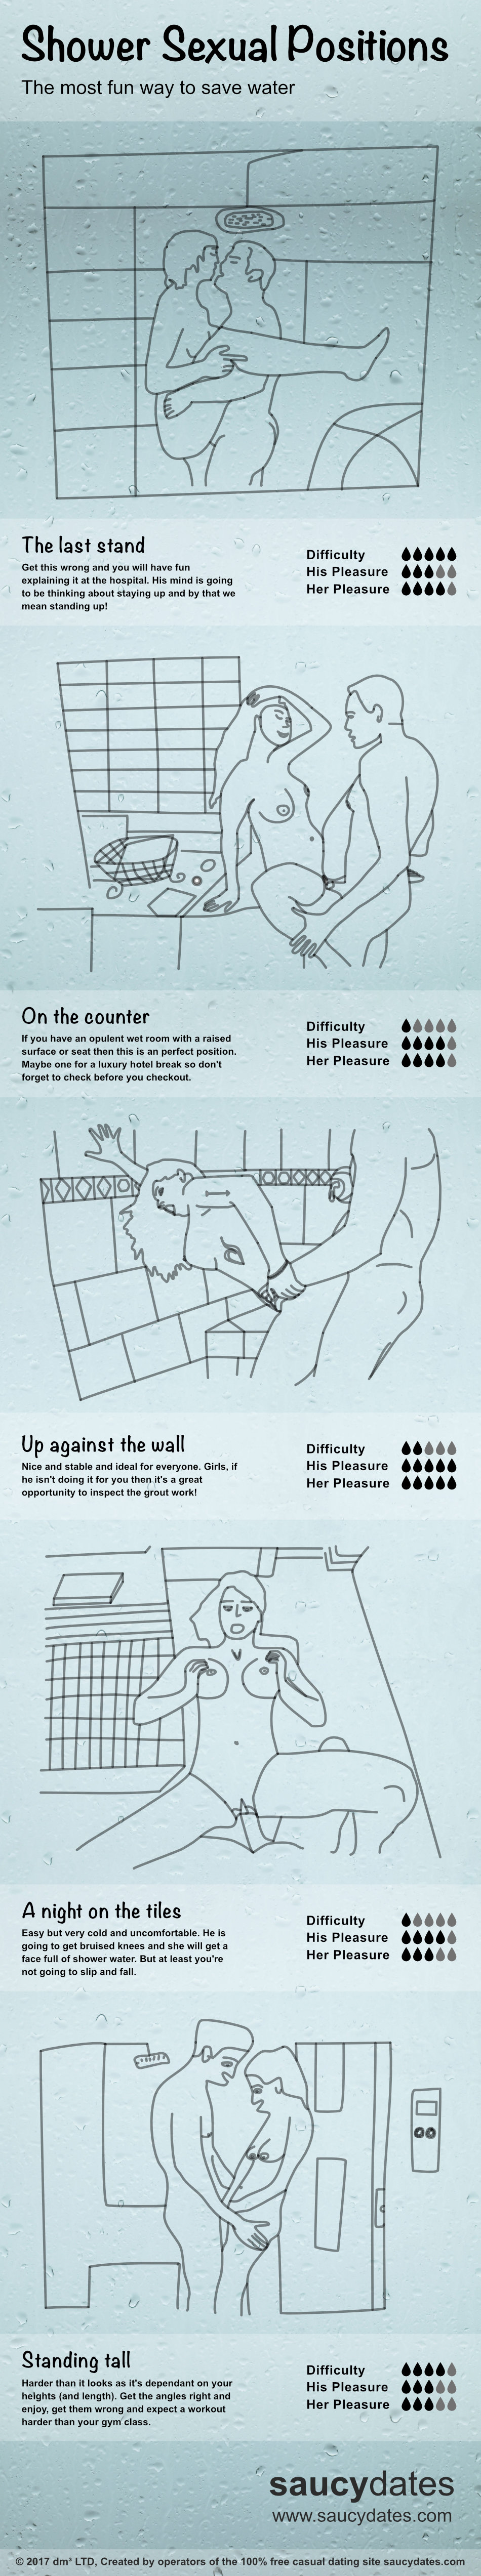 shower sex positons infographic